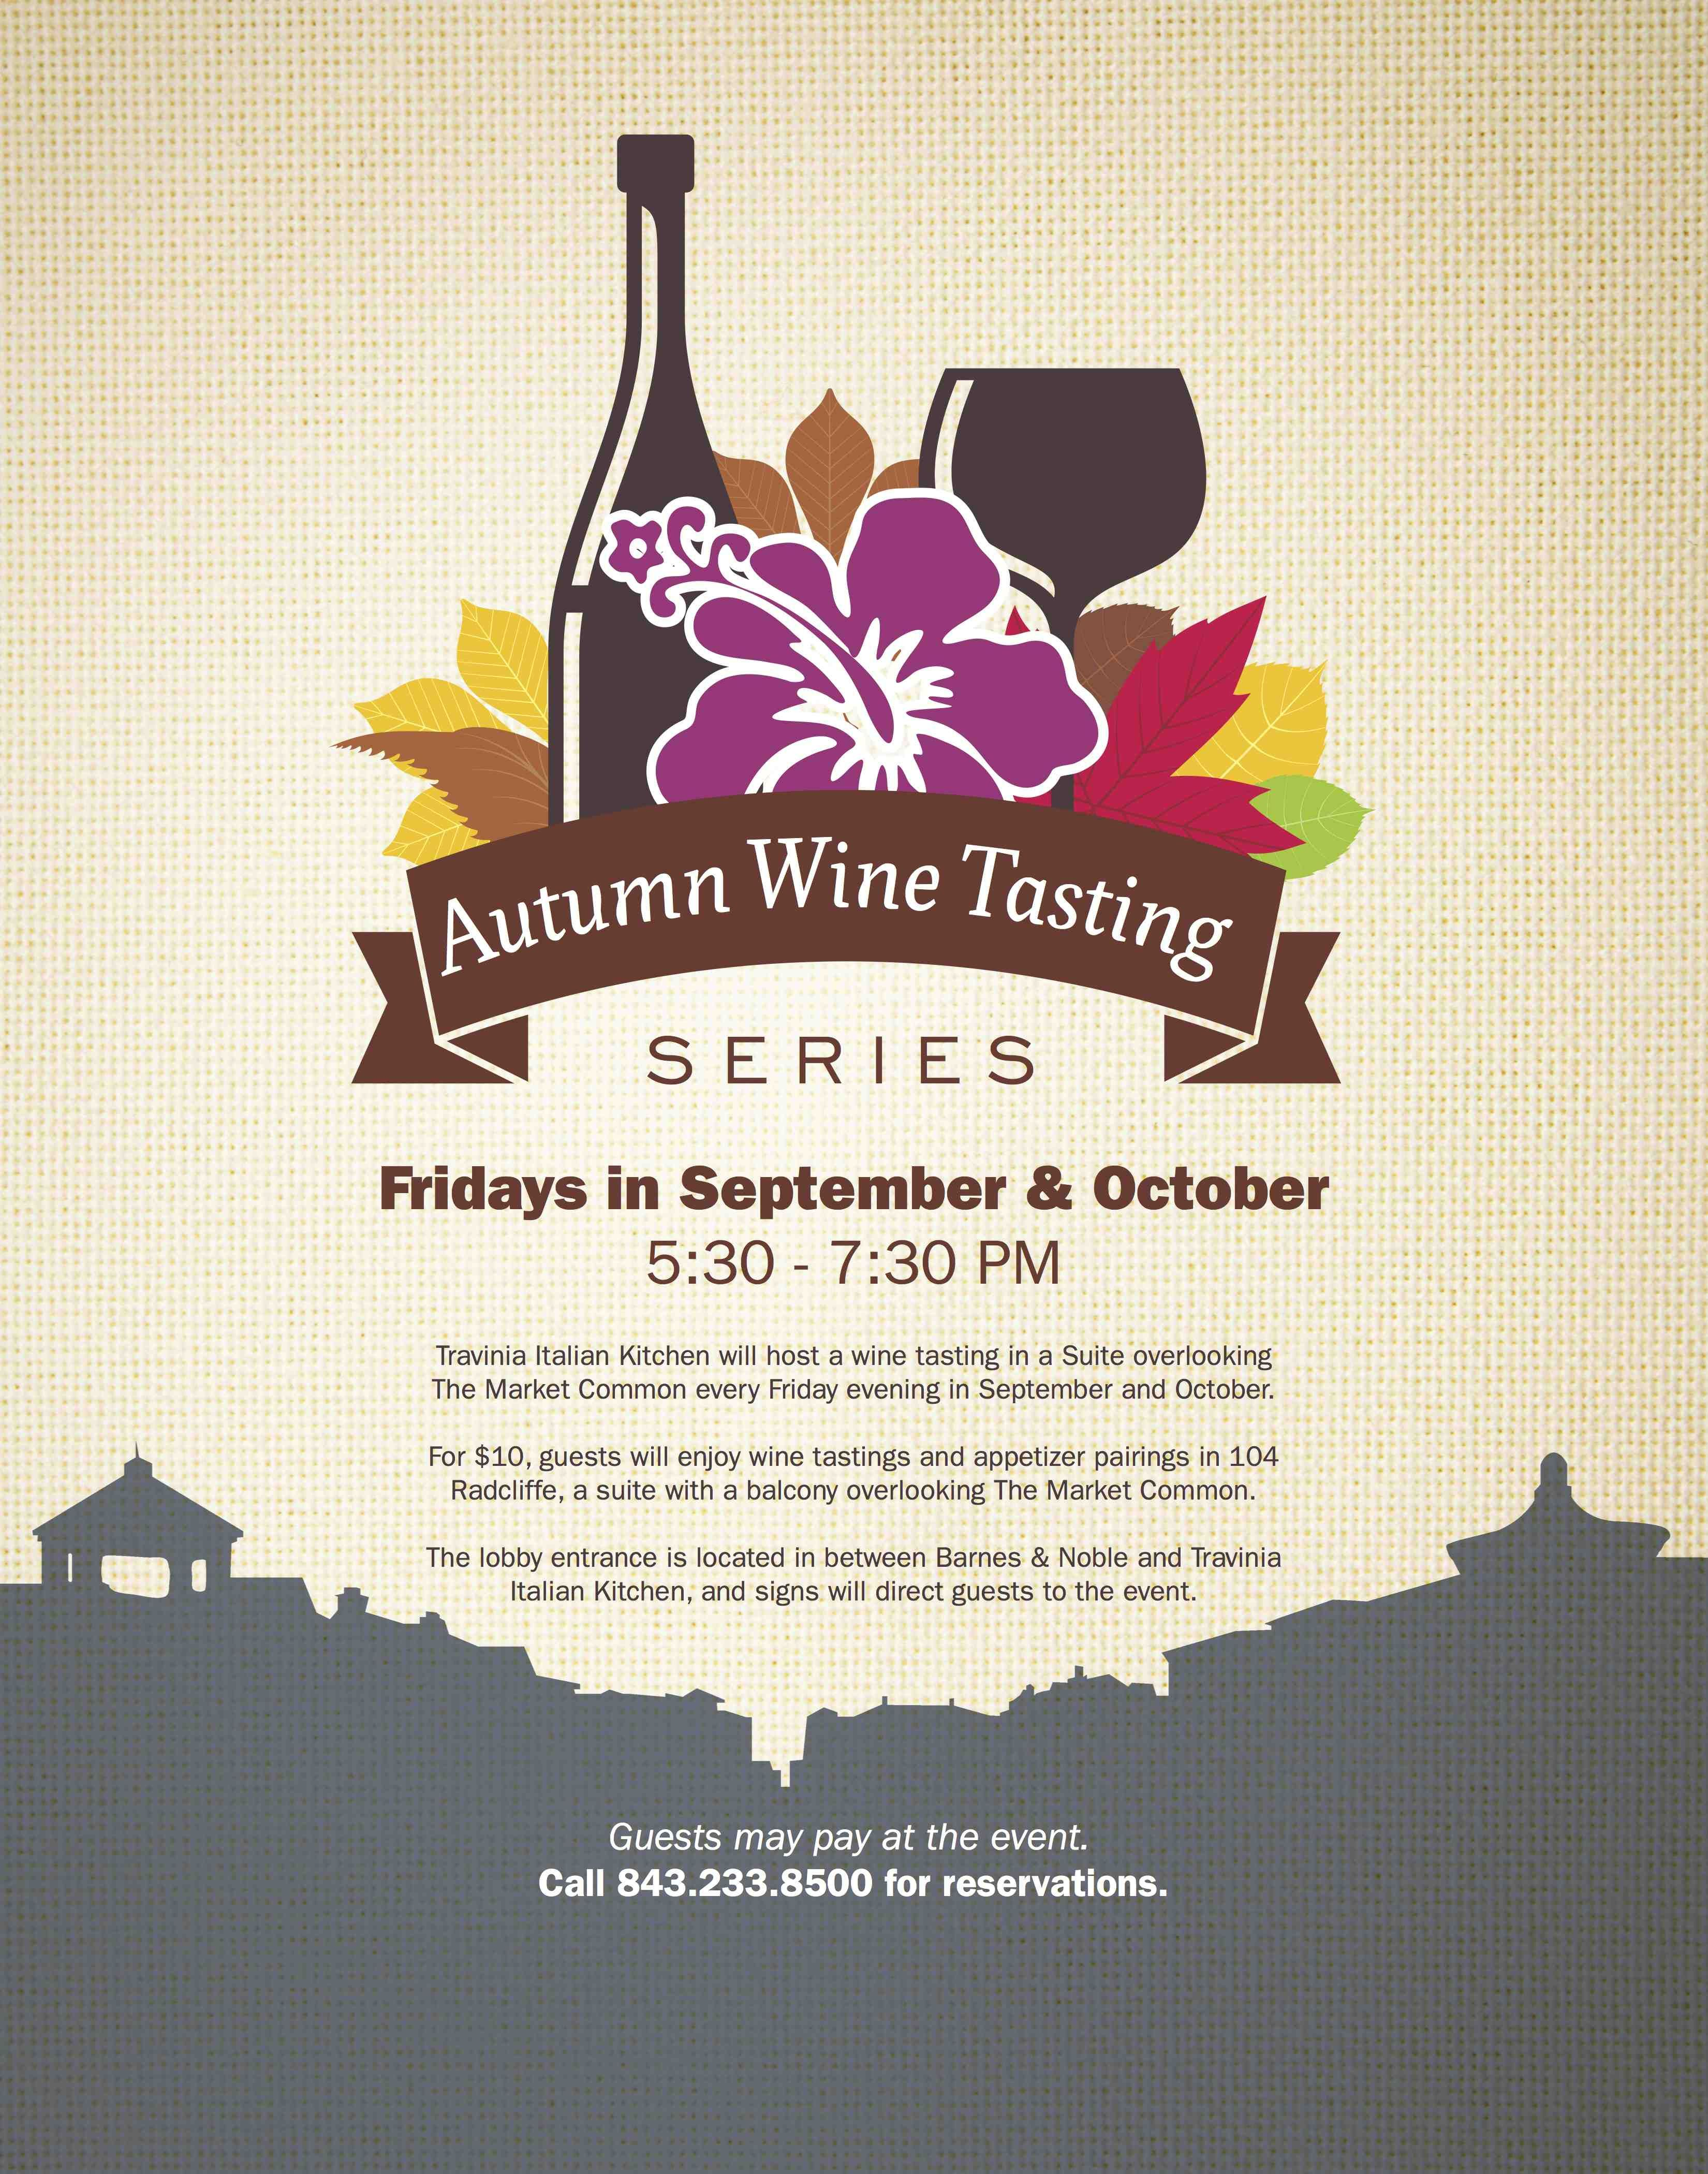 wine tastings every friday in a suite overlooking the market